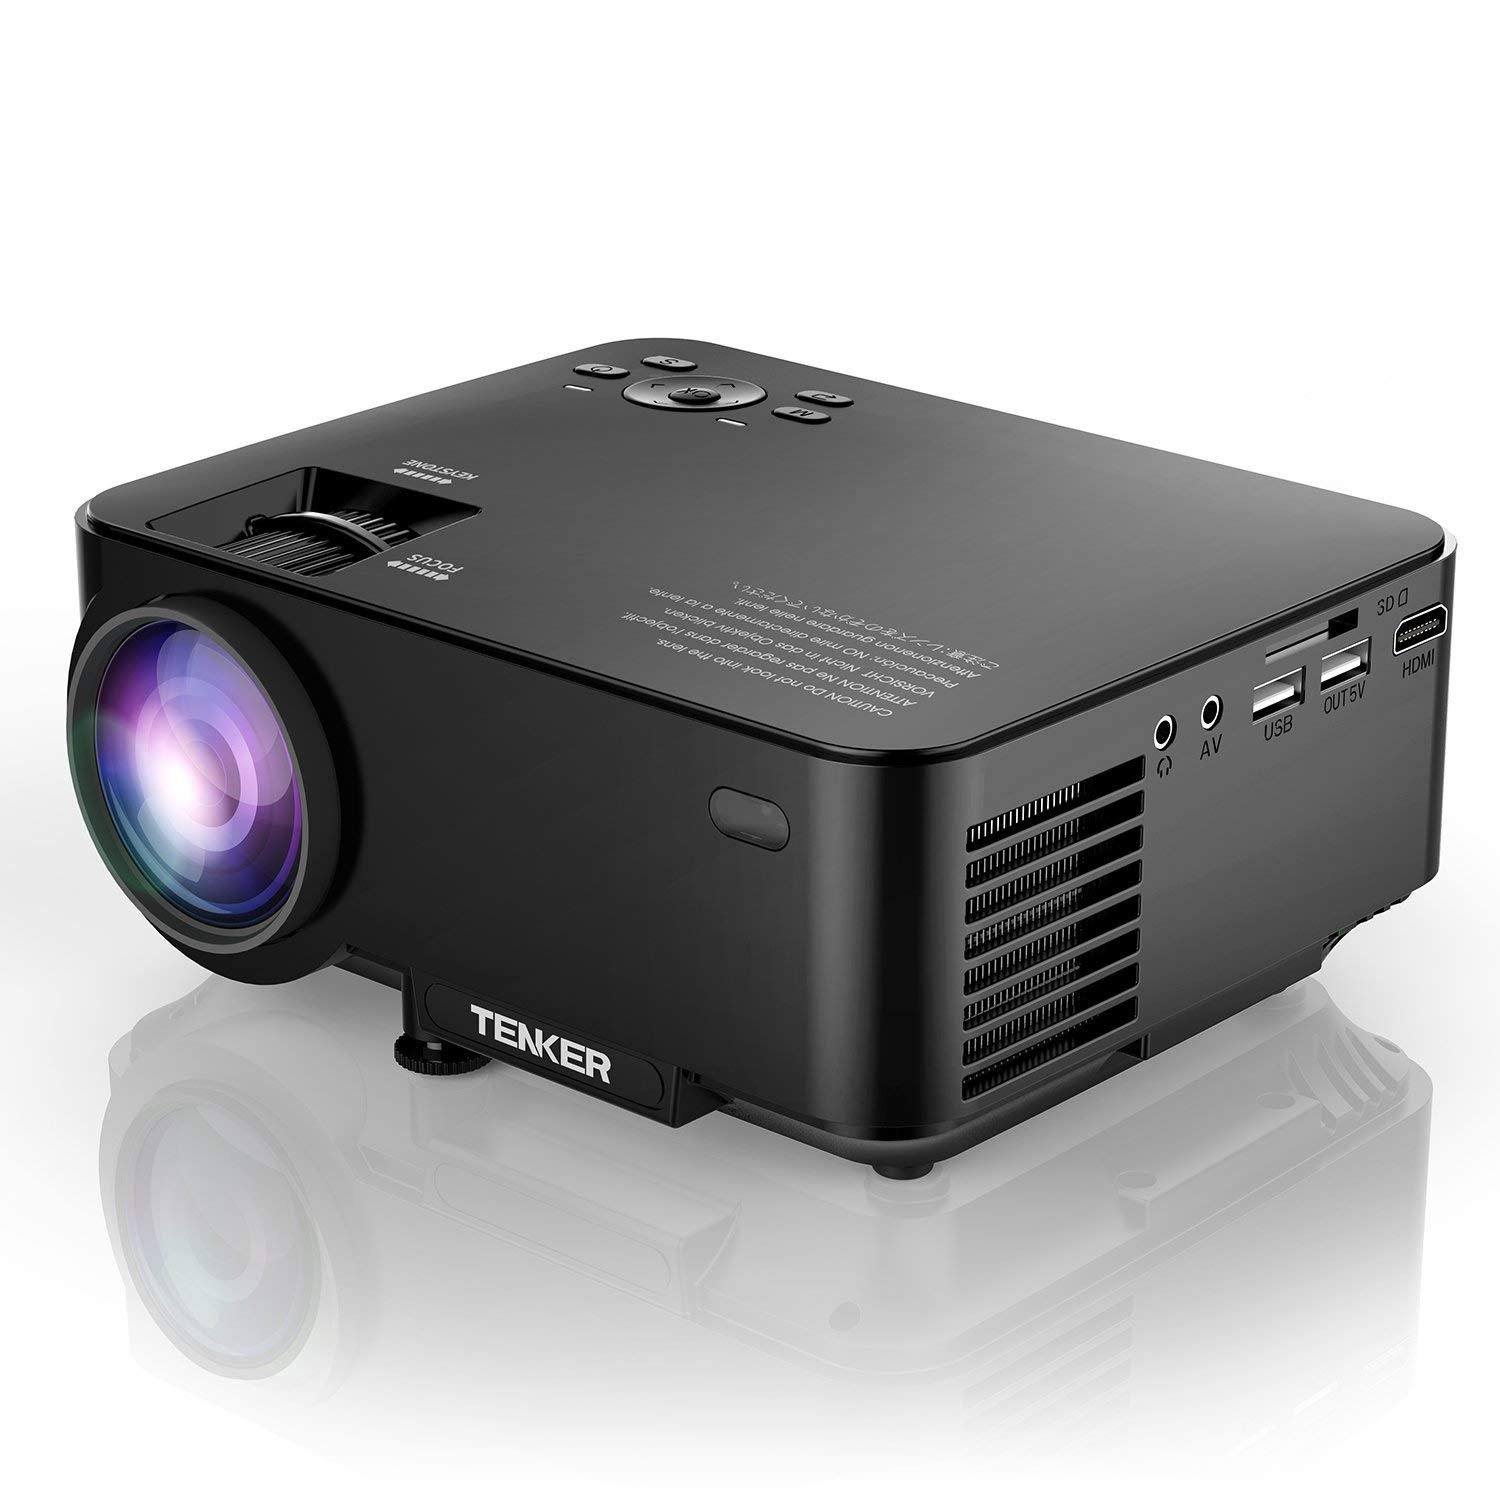 Projector, TENKER Upgrade +30% Lumens Mini Projector Home Theater 4.0'' LCD Movie Projector with 176'' Display Support 1080P HDMI USB SD Card AV VGA for TV Laptop Game Smartphone Includes HDMI Cable